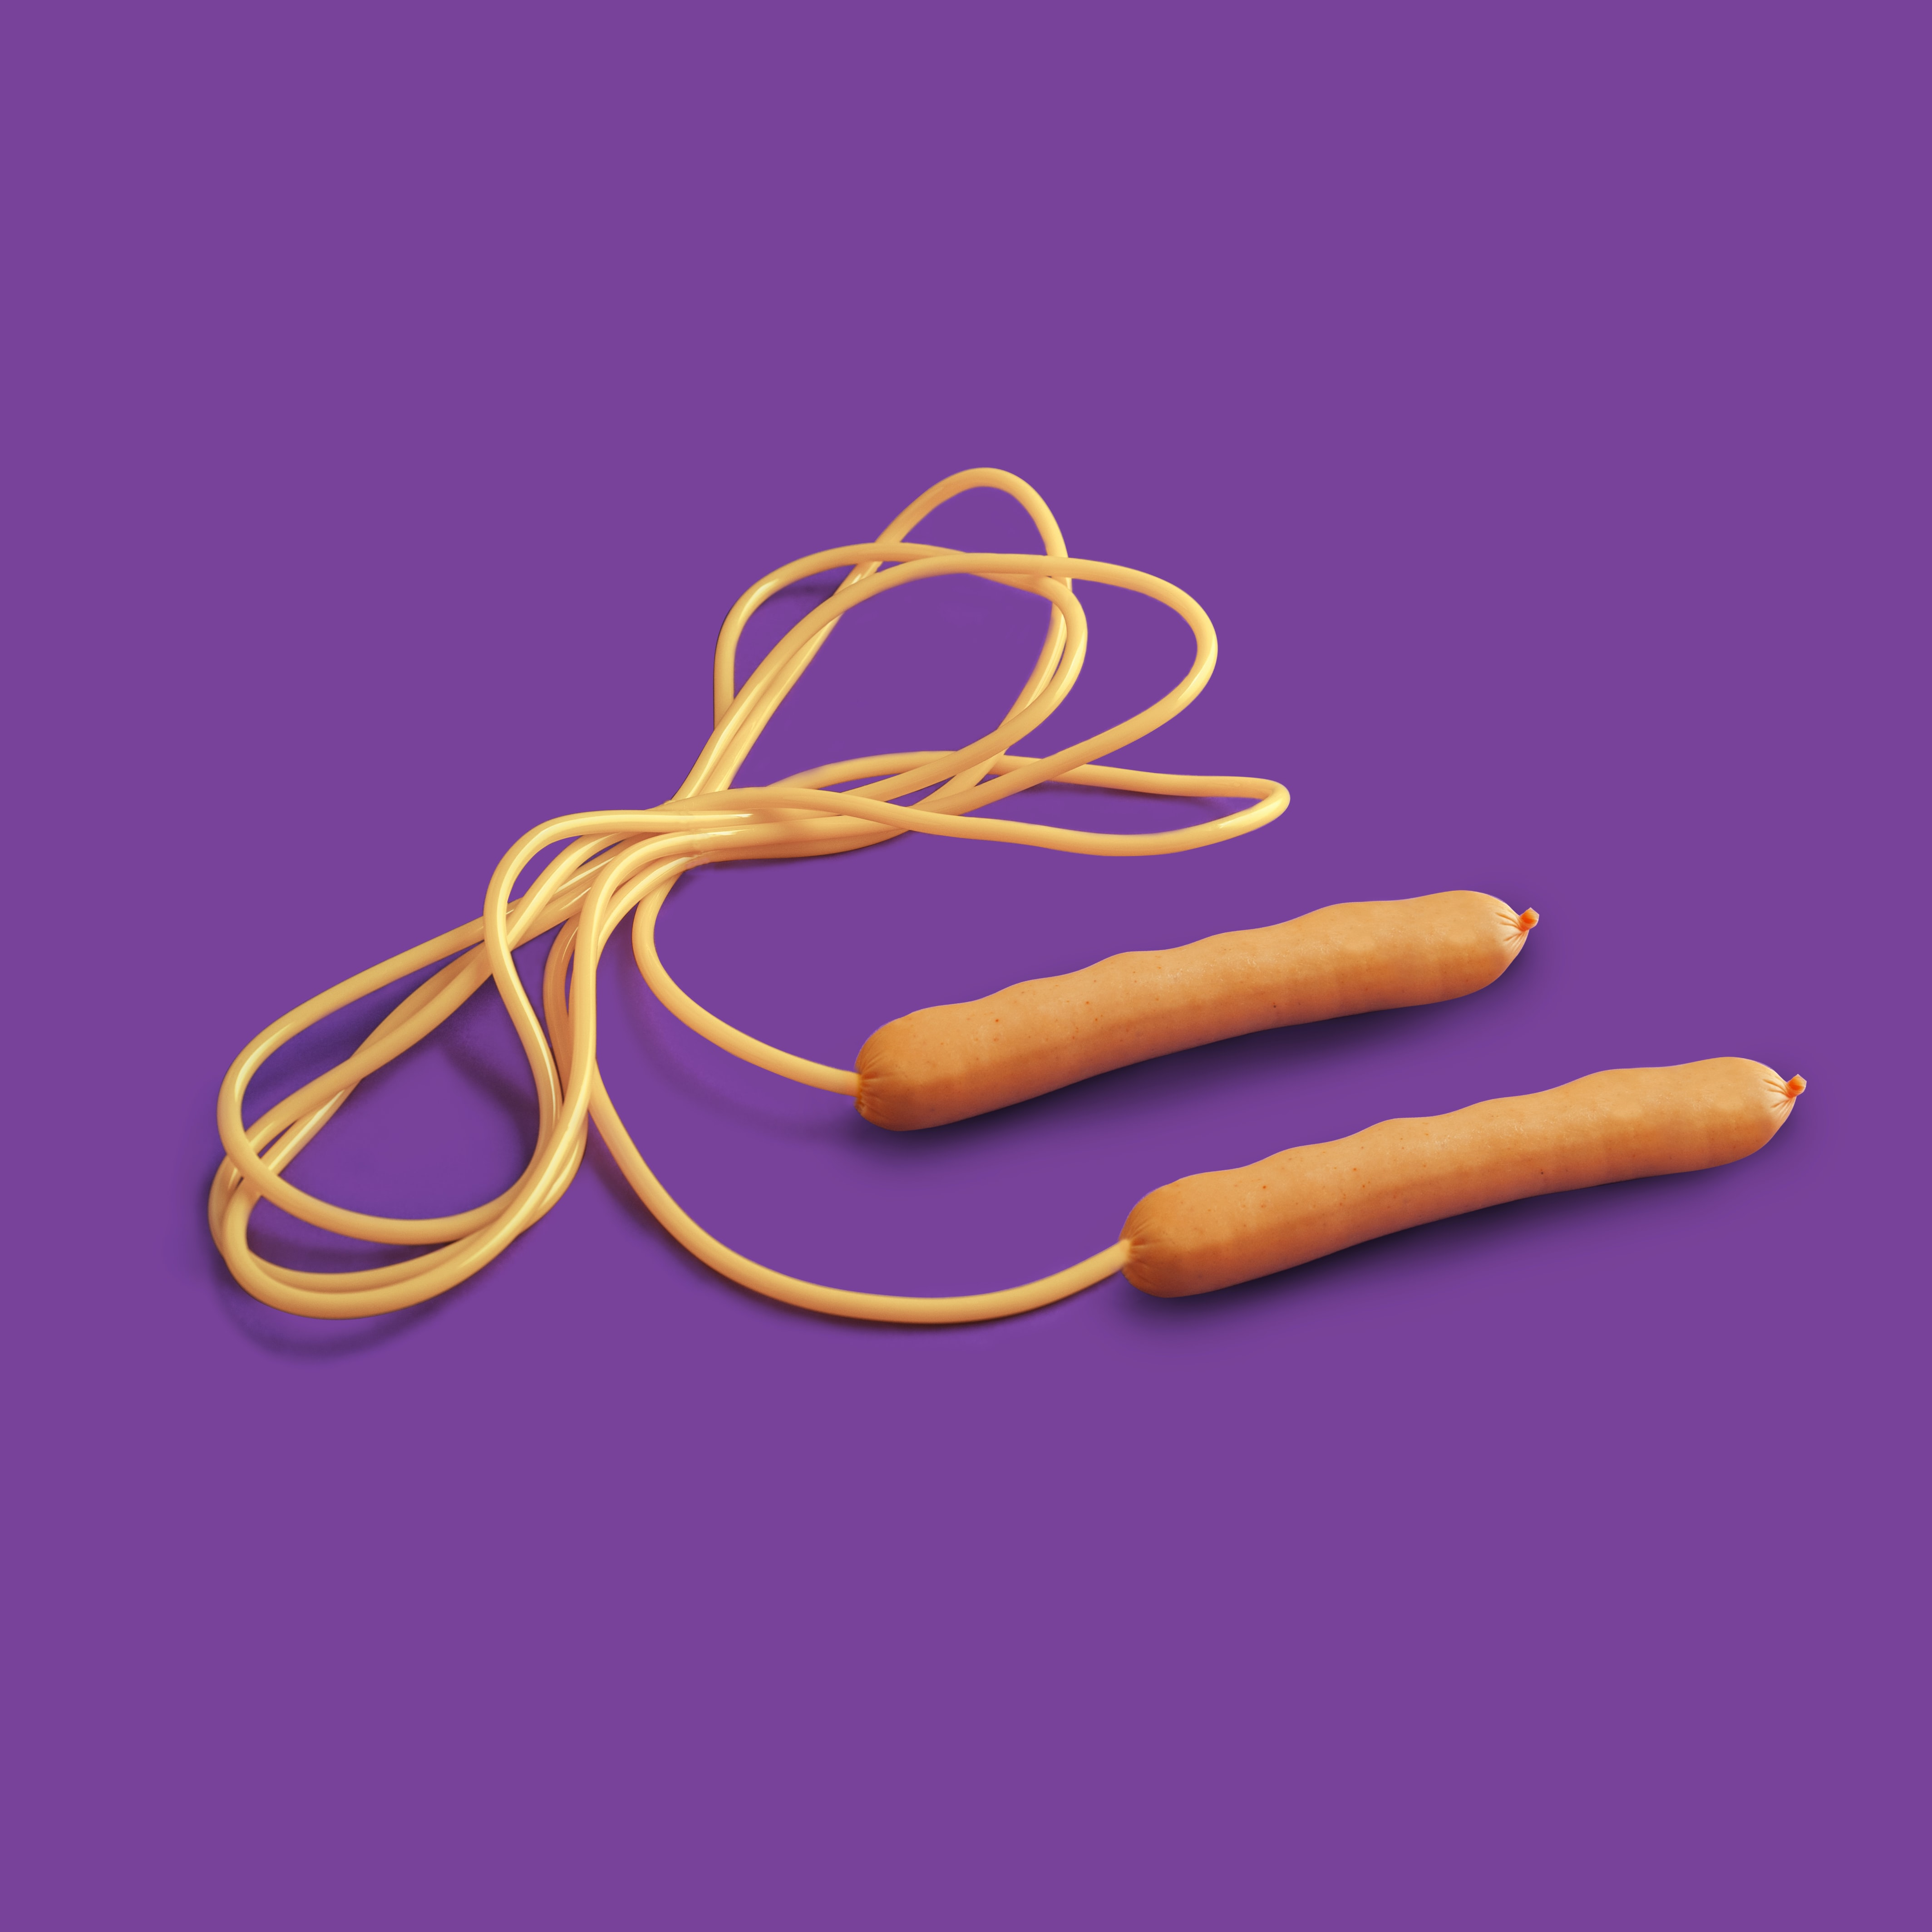 orange skipping rope